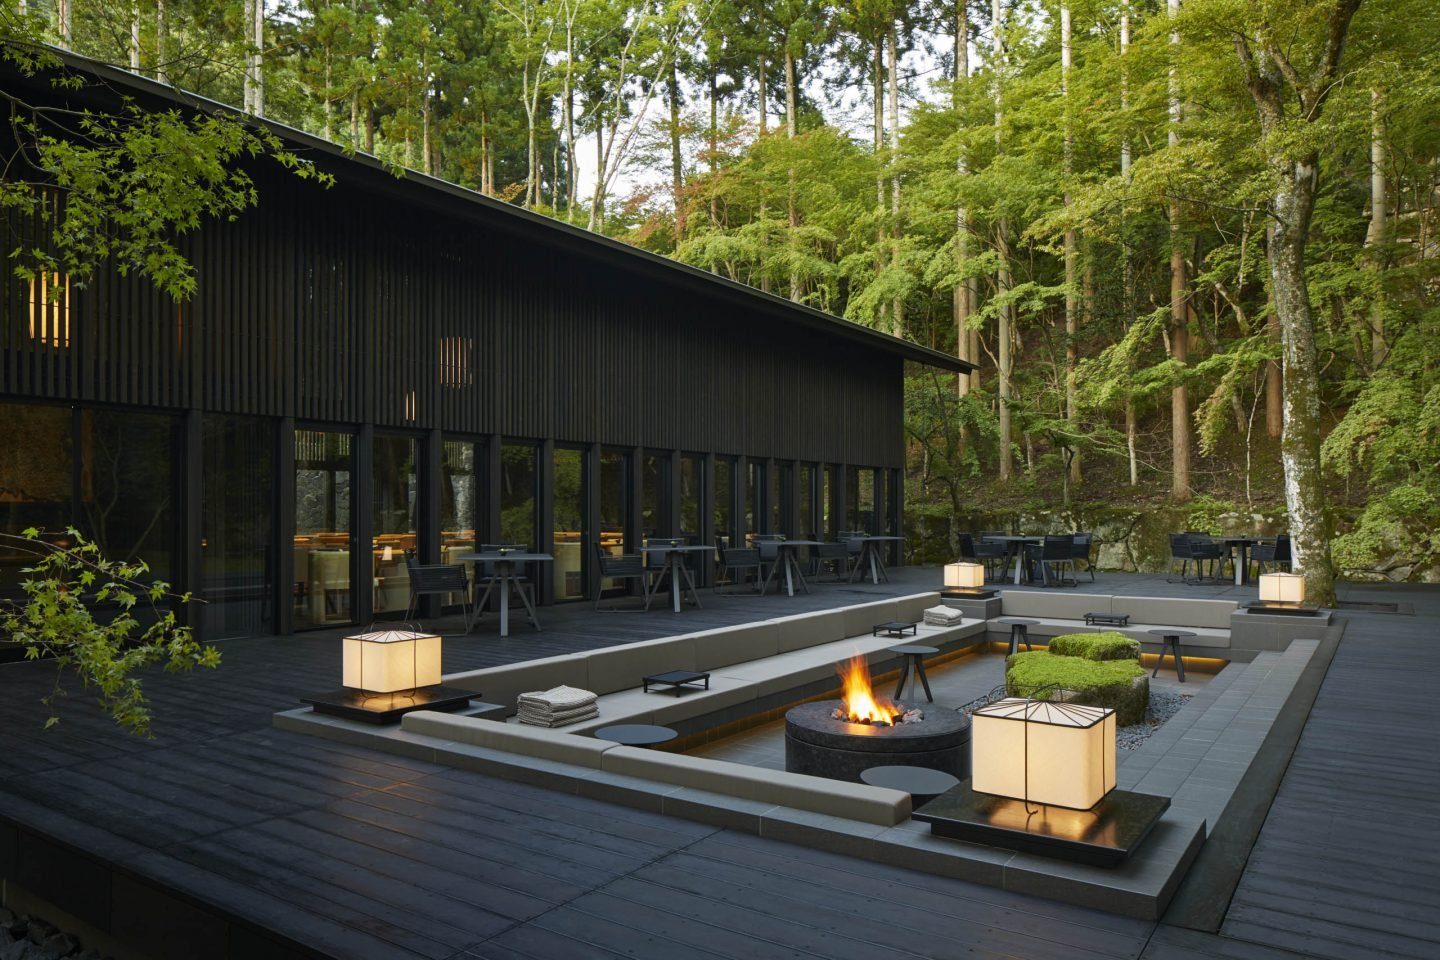 Aman Kyoto, Japan - The Living Pavilion by Aman